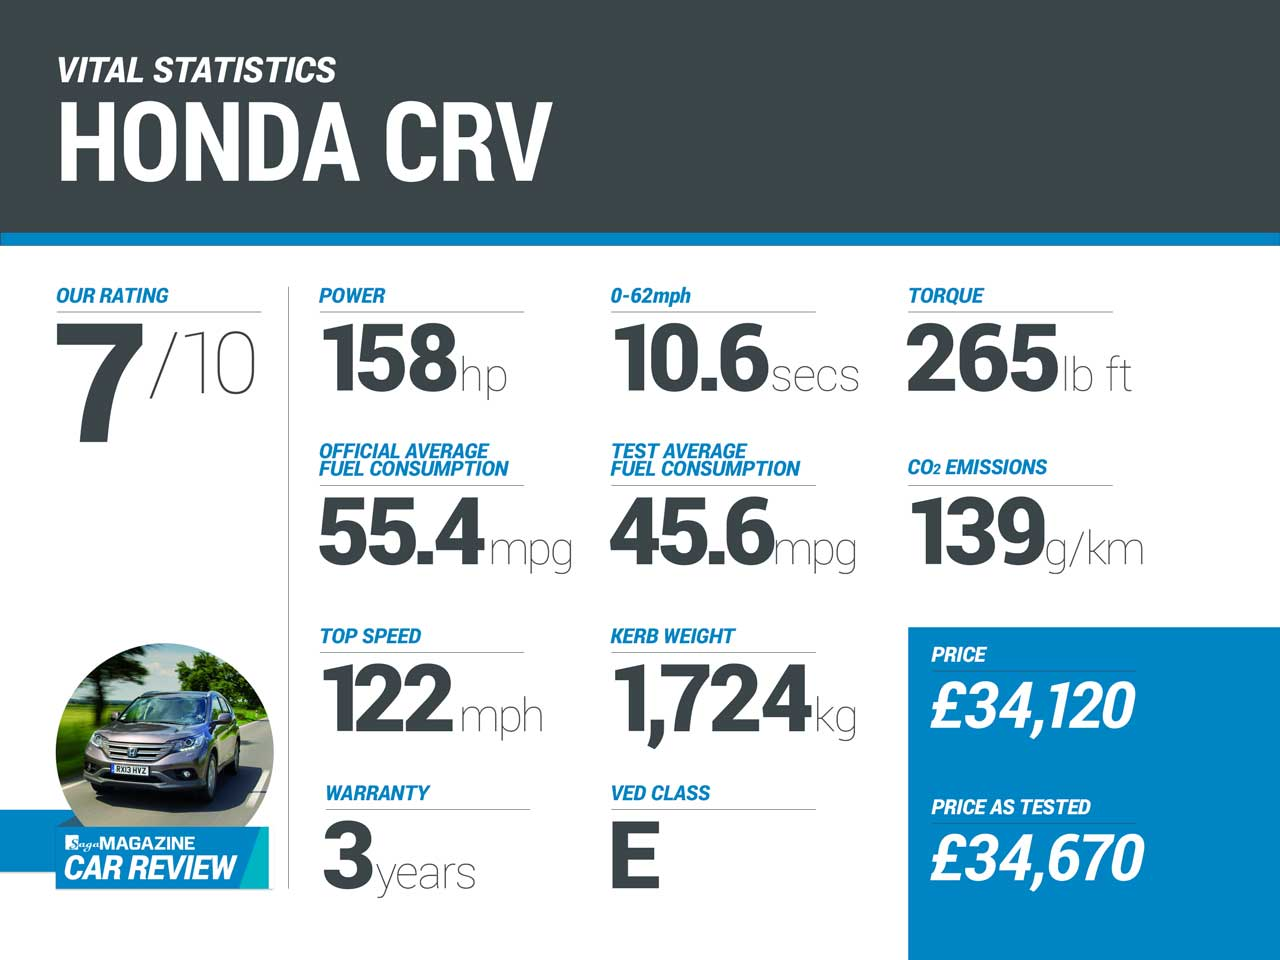 Honda CR-V infographic